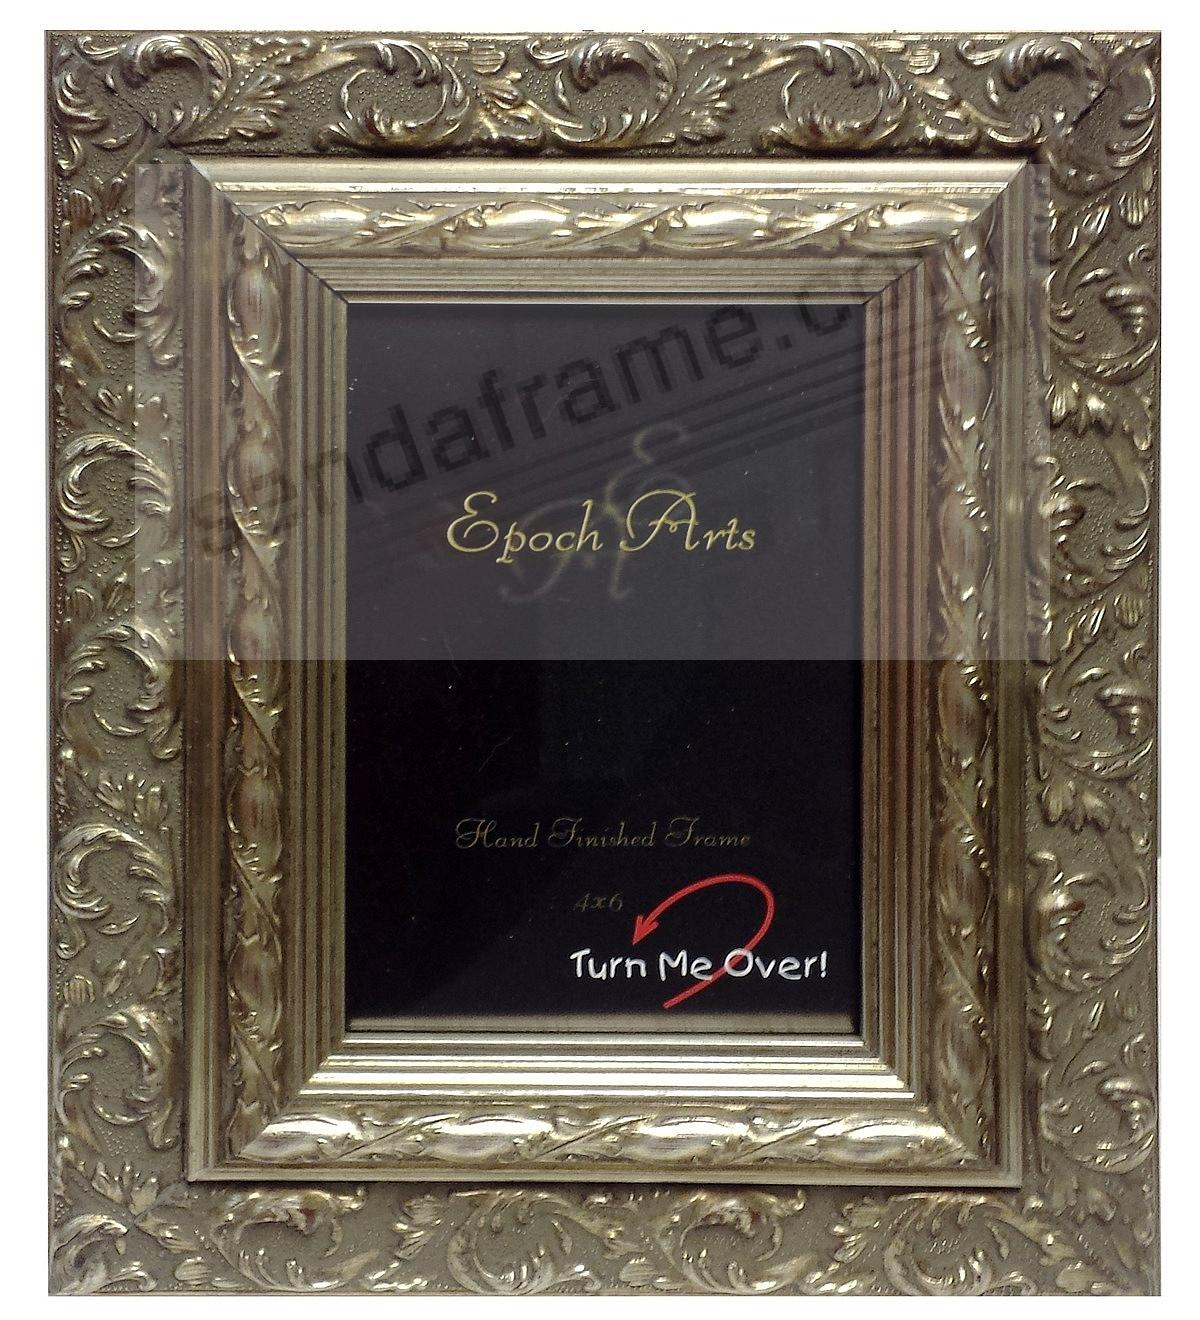 Elegant collector quality 19th century solo reproduction for Engraved digital photo frame